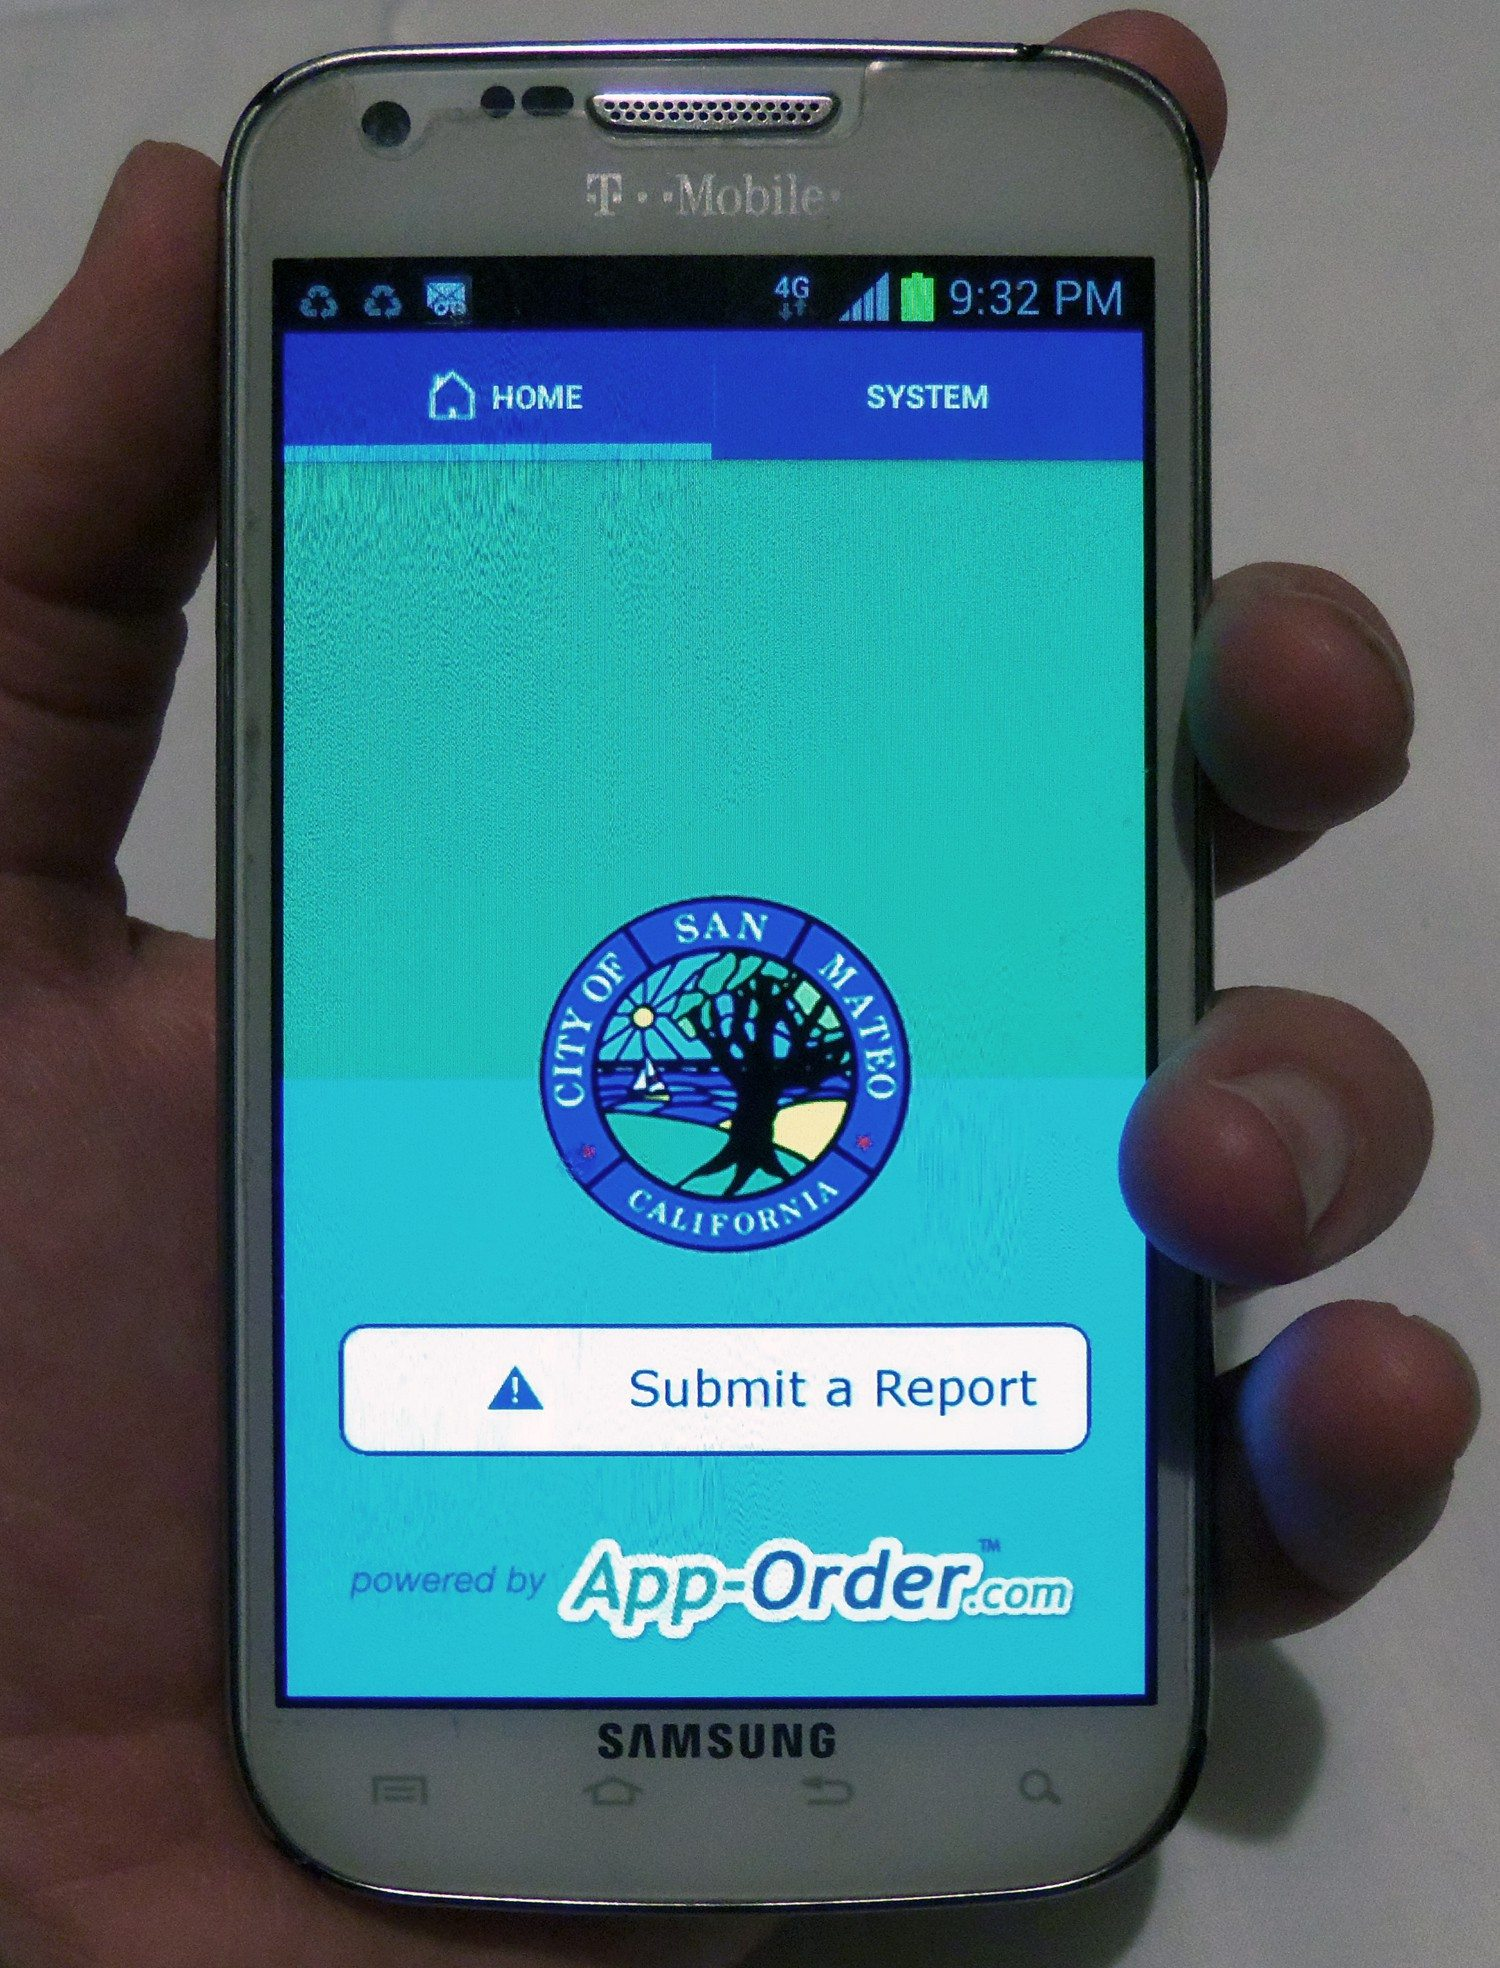 Brendan P. Bartholomew/Special to the S.f. ExaminerIssues reported through the mySanMateo app are resolved within days